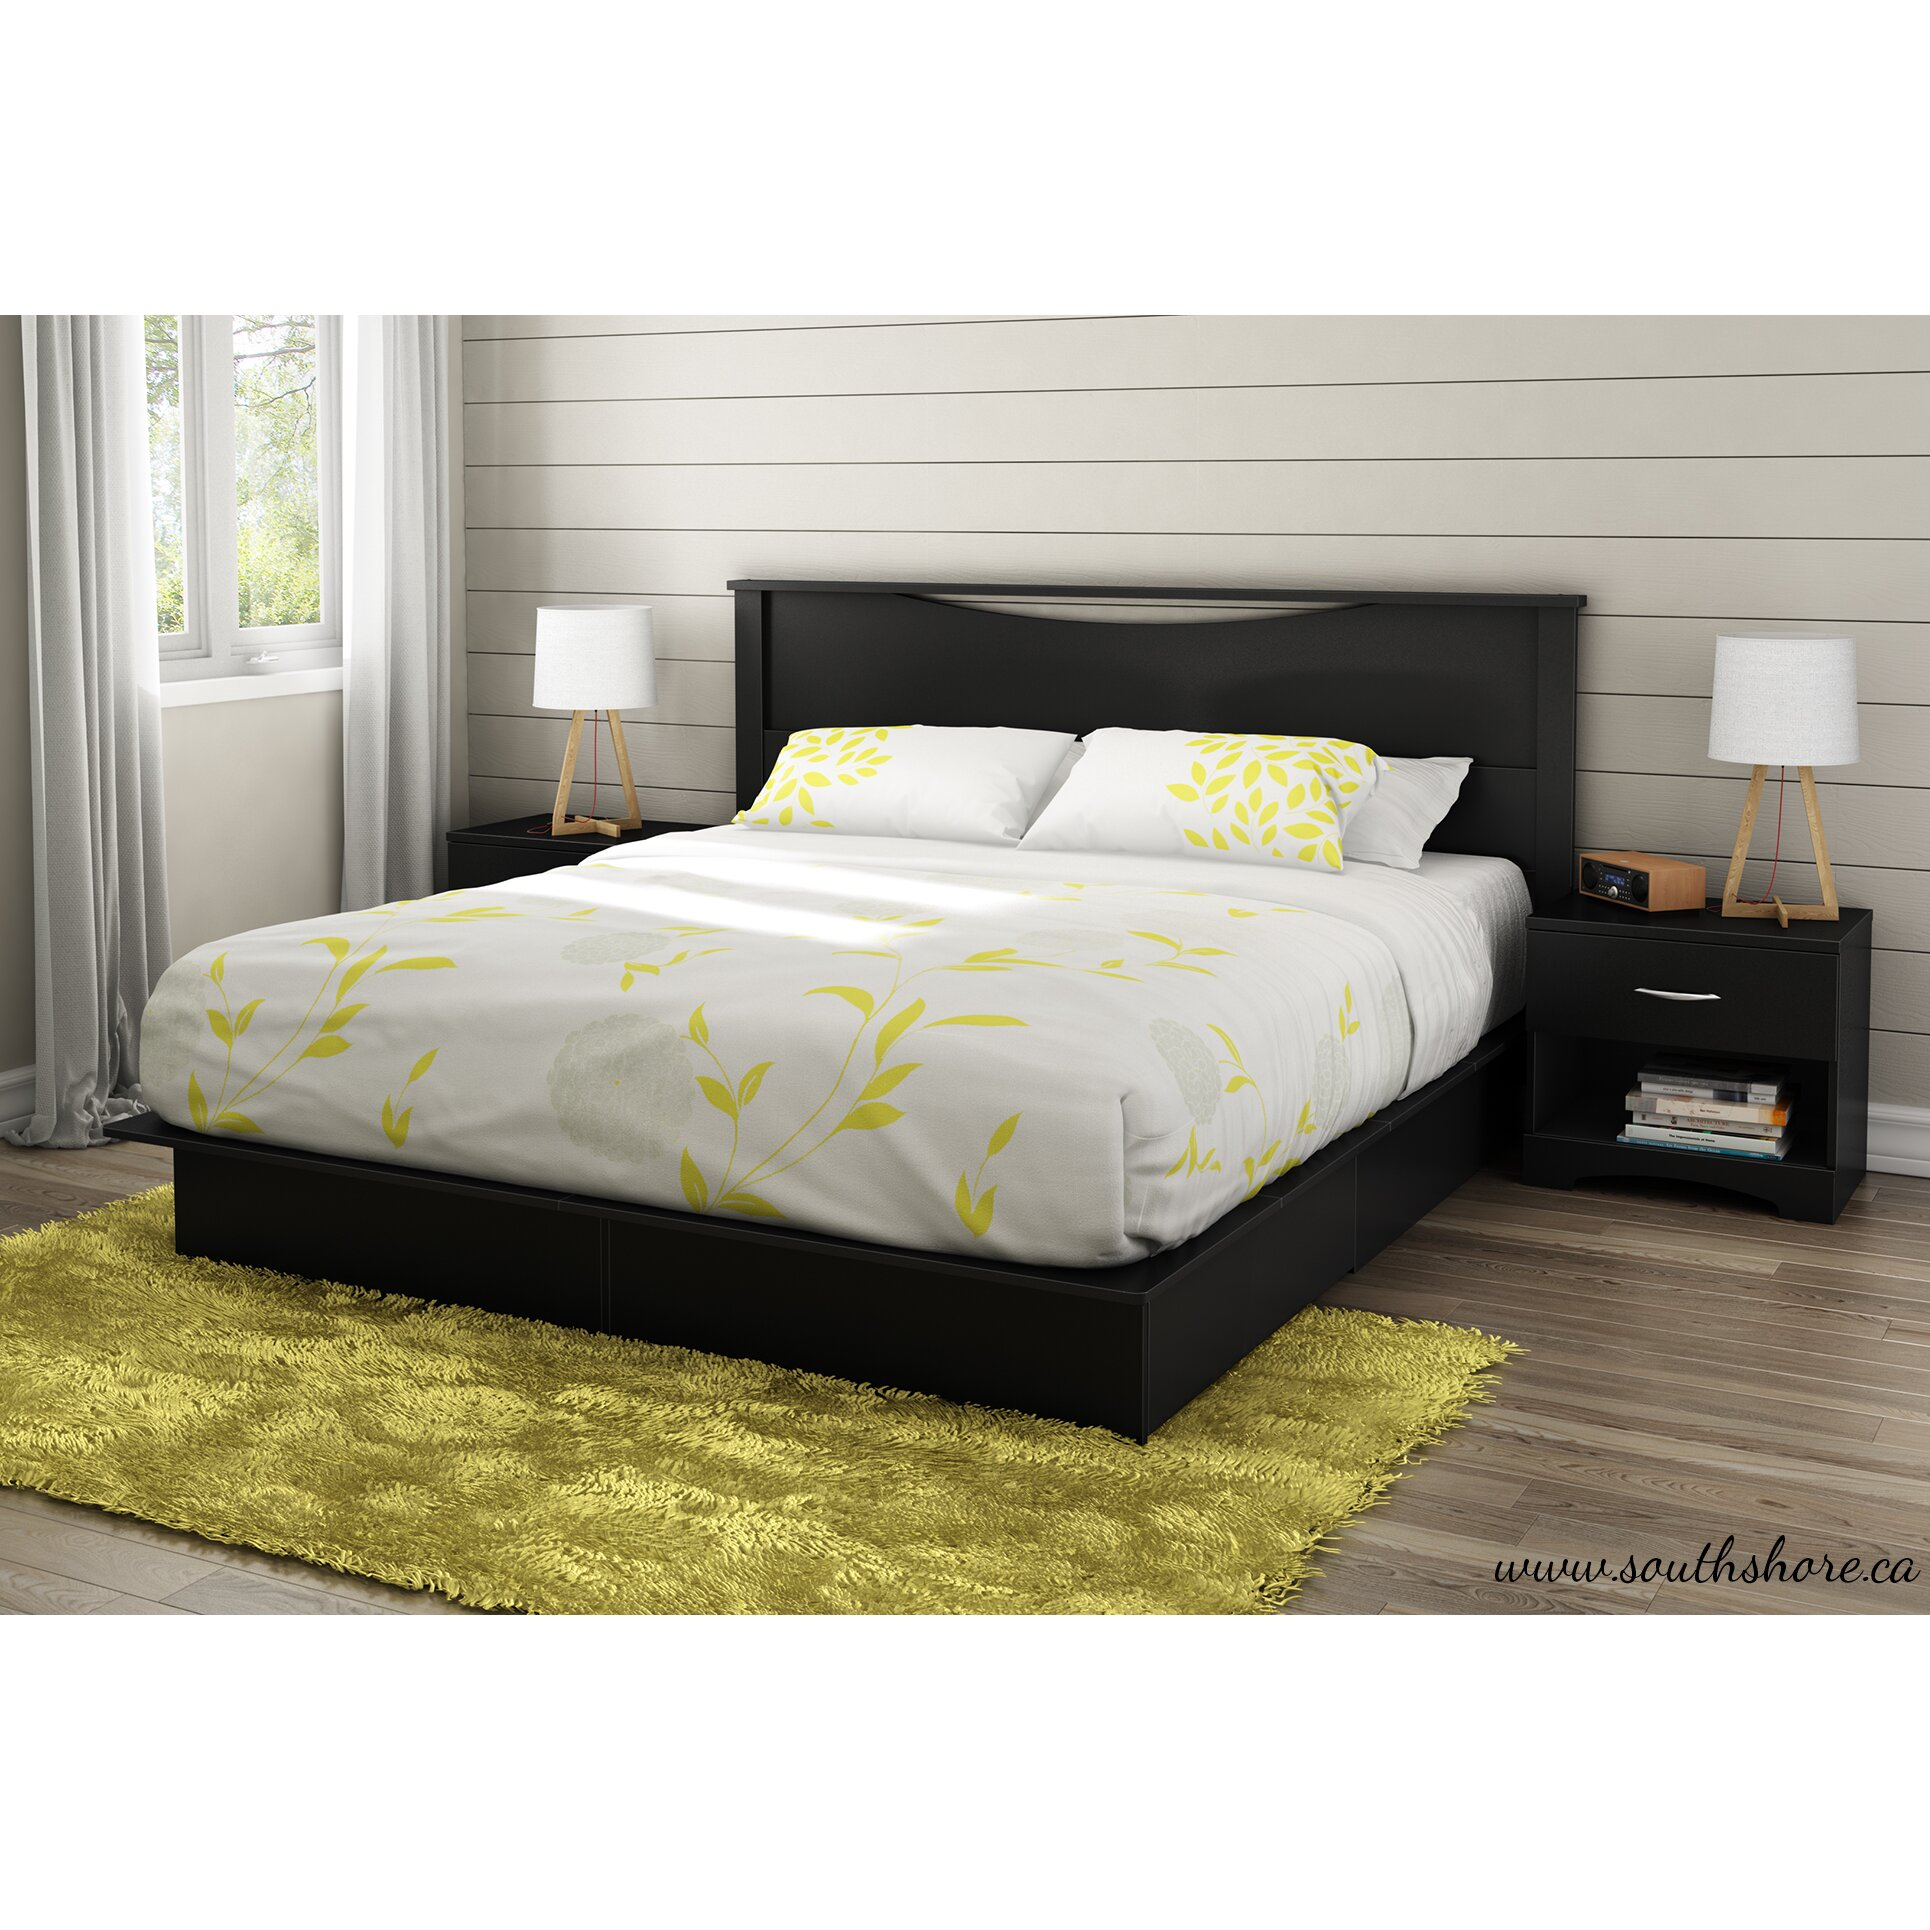 Platform Beds With Storage For Sale